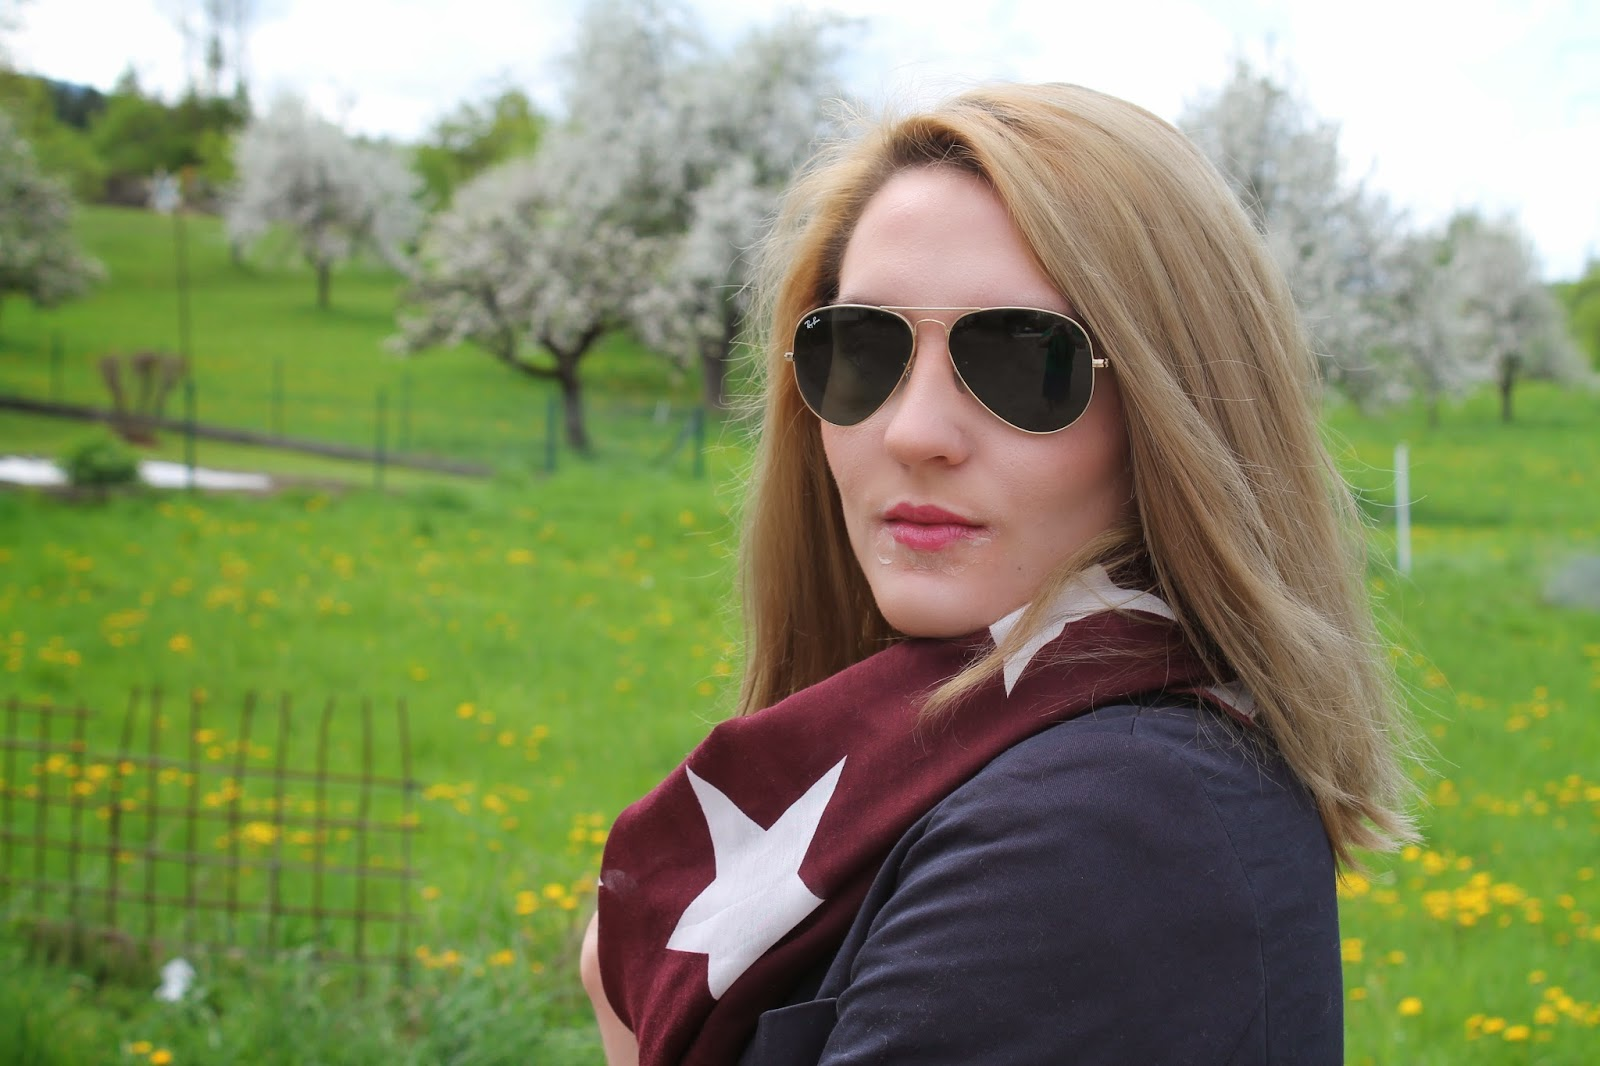 Fashionblogger Austria / Österreich / Deutsch / German / Kärnten / Carinthia / Klagenfurt / Köttmannsdorf / Spring Look / Classy / Elegant / Office Look / Blazer / Pumps / Zara / H&M/ Even and Odd / Zalando / Only / Ray Ban/